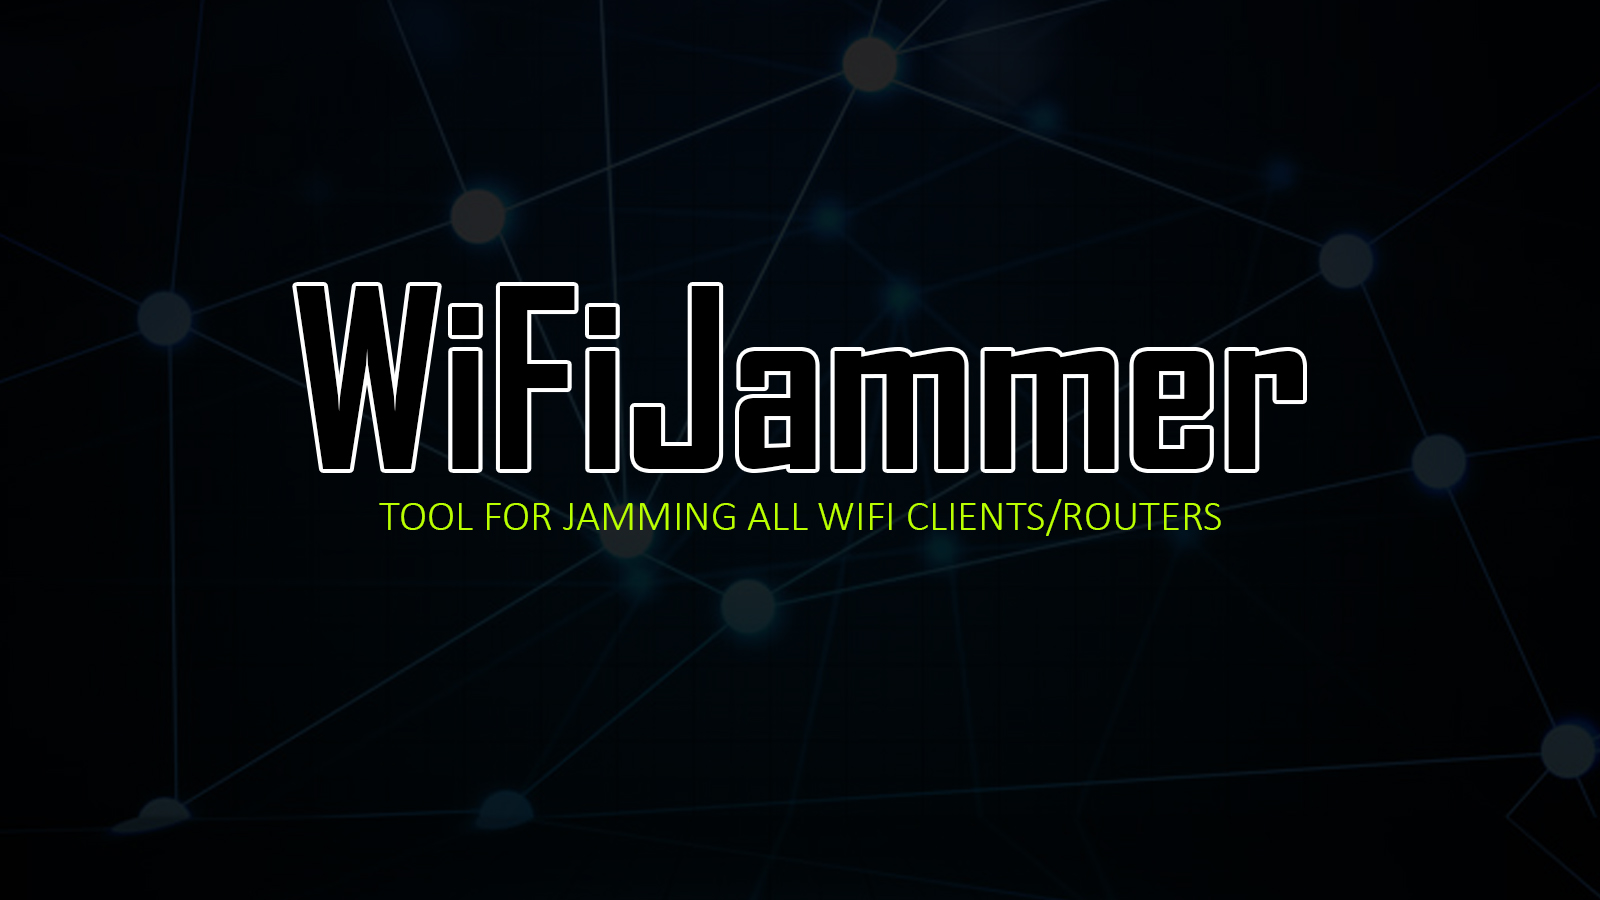 WiFiJammer - Tool For Jamming All WiFi Clients/Routers